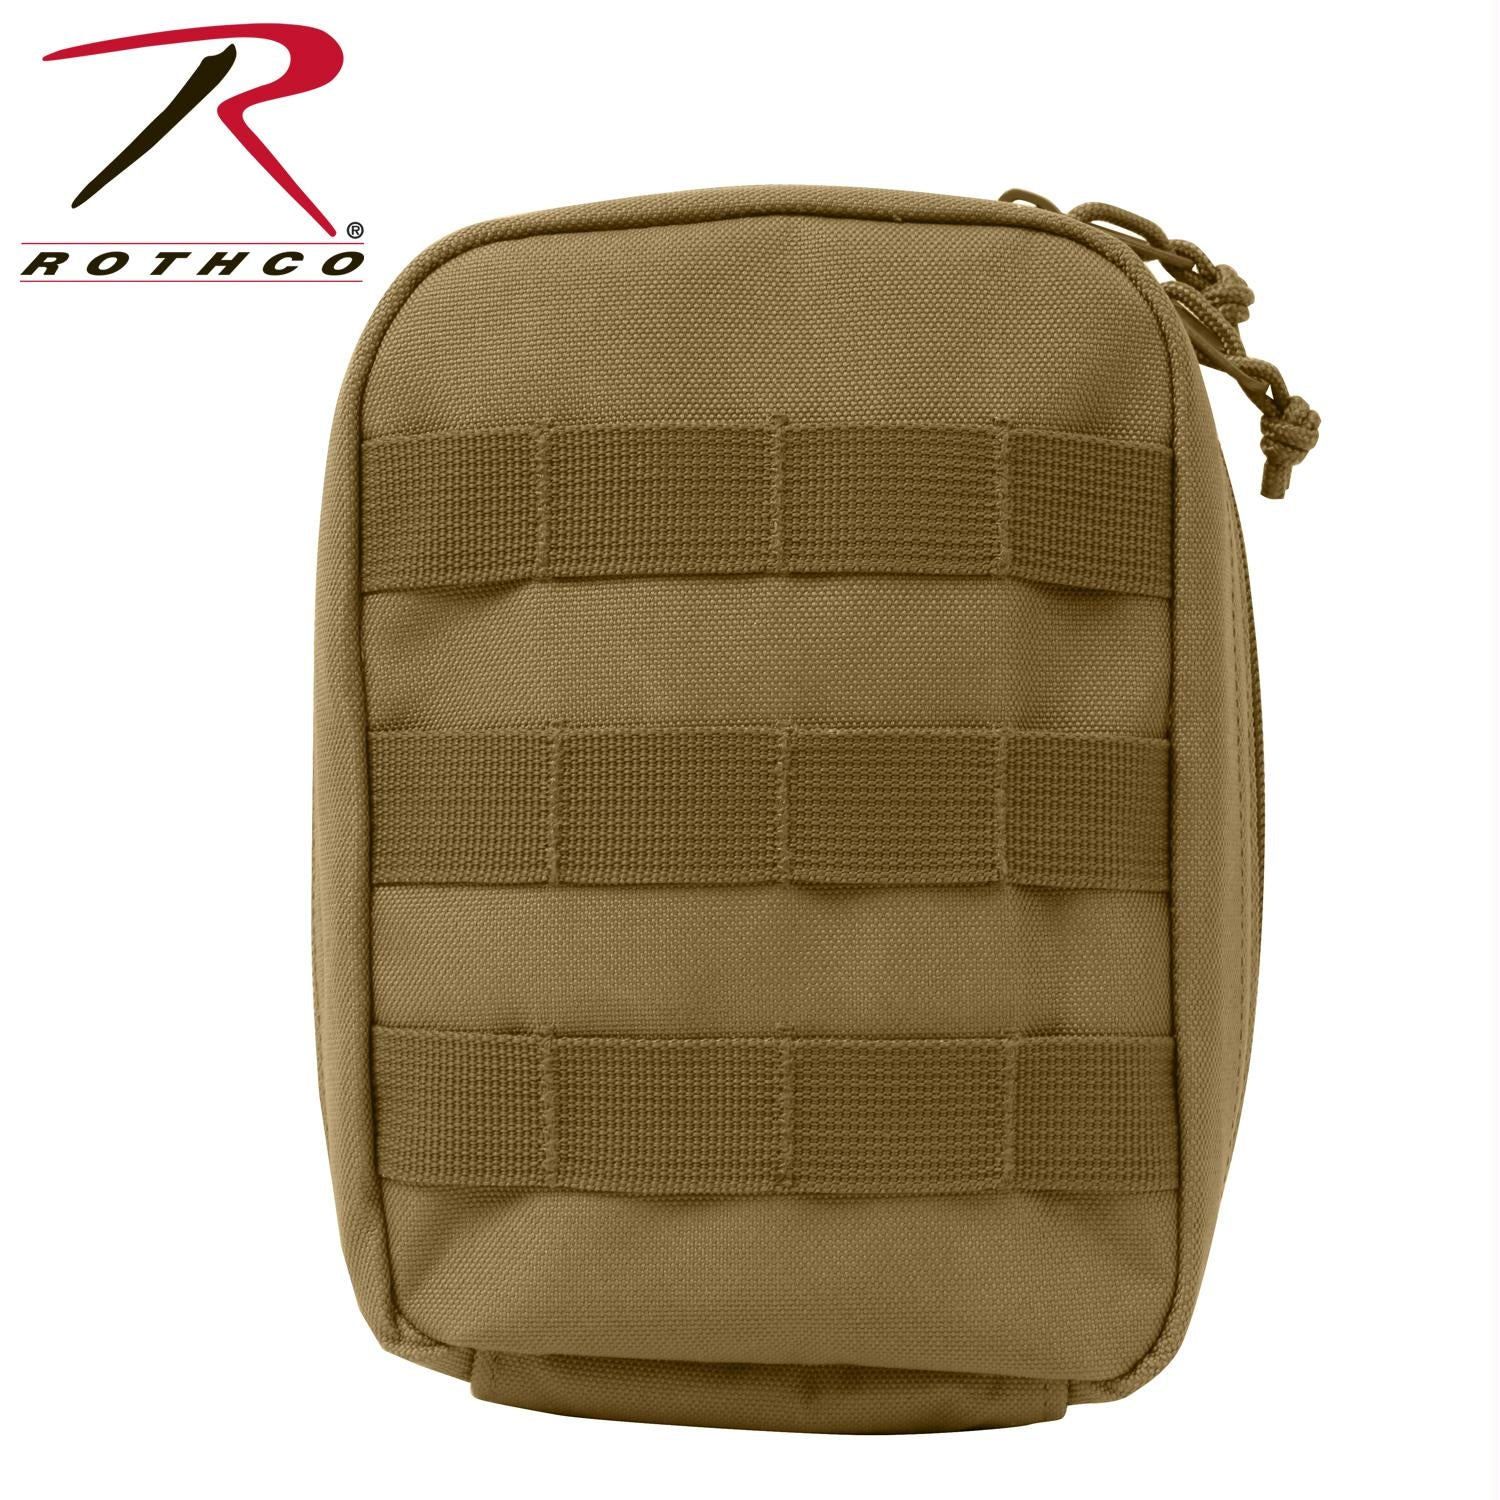 Rothco MOLLE Tactical First Aid Kit - Coyote Brown